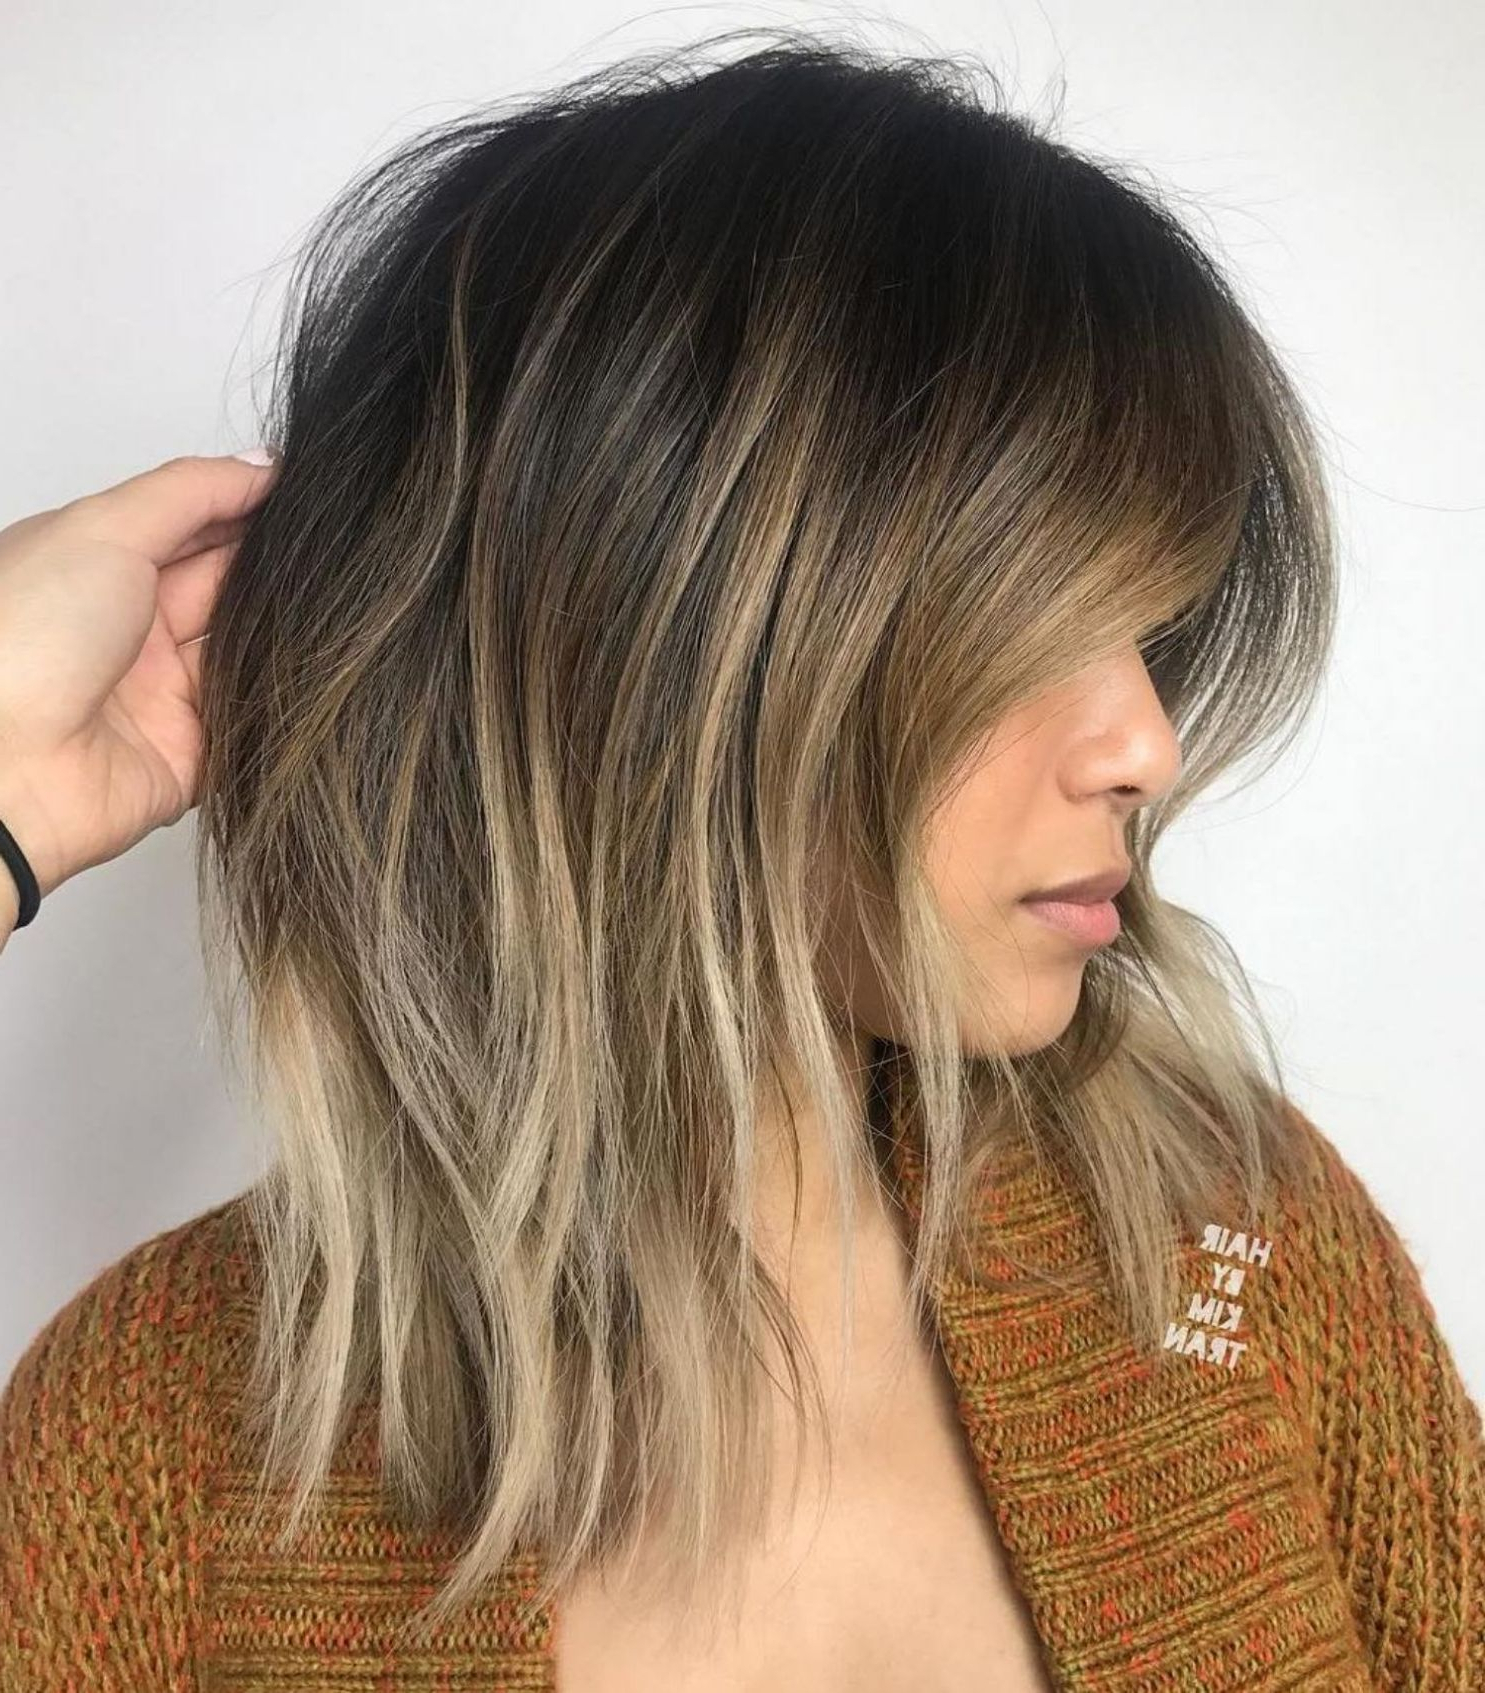 60 Fun And Flattering Medium Hairstyles For Women In 2019 In Disconnected Shaggy Brunette Bob Hairstyles (View 6 of 20)